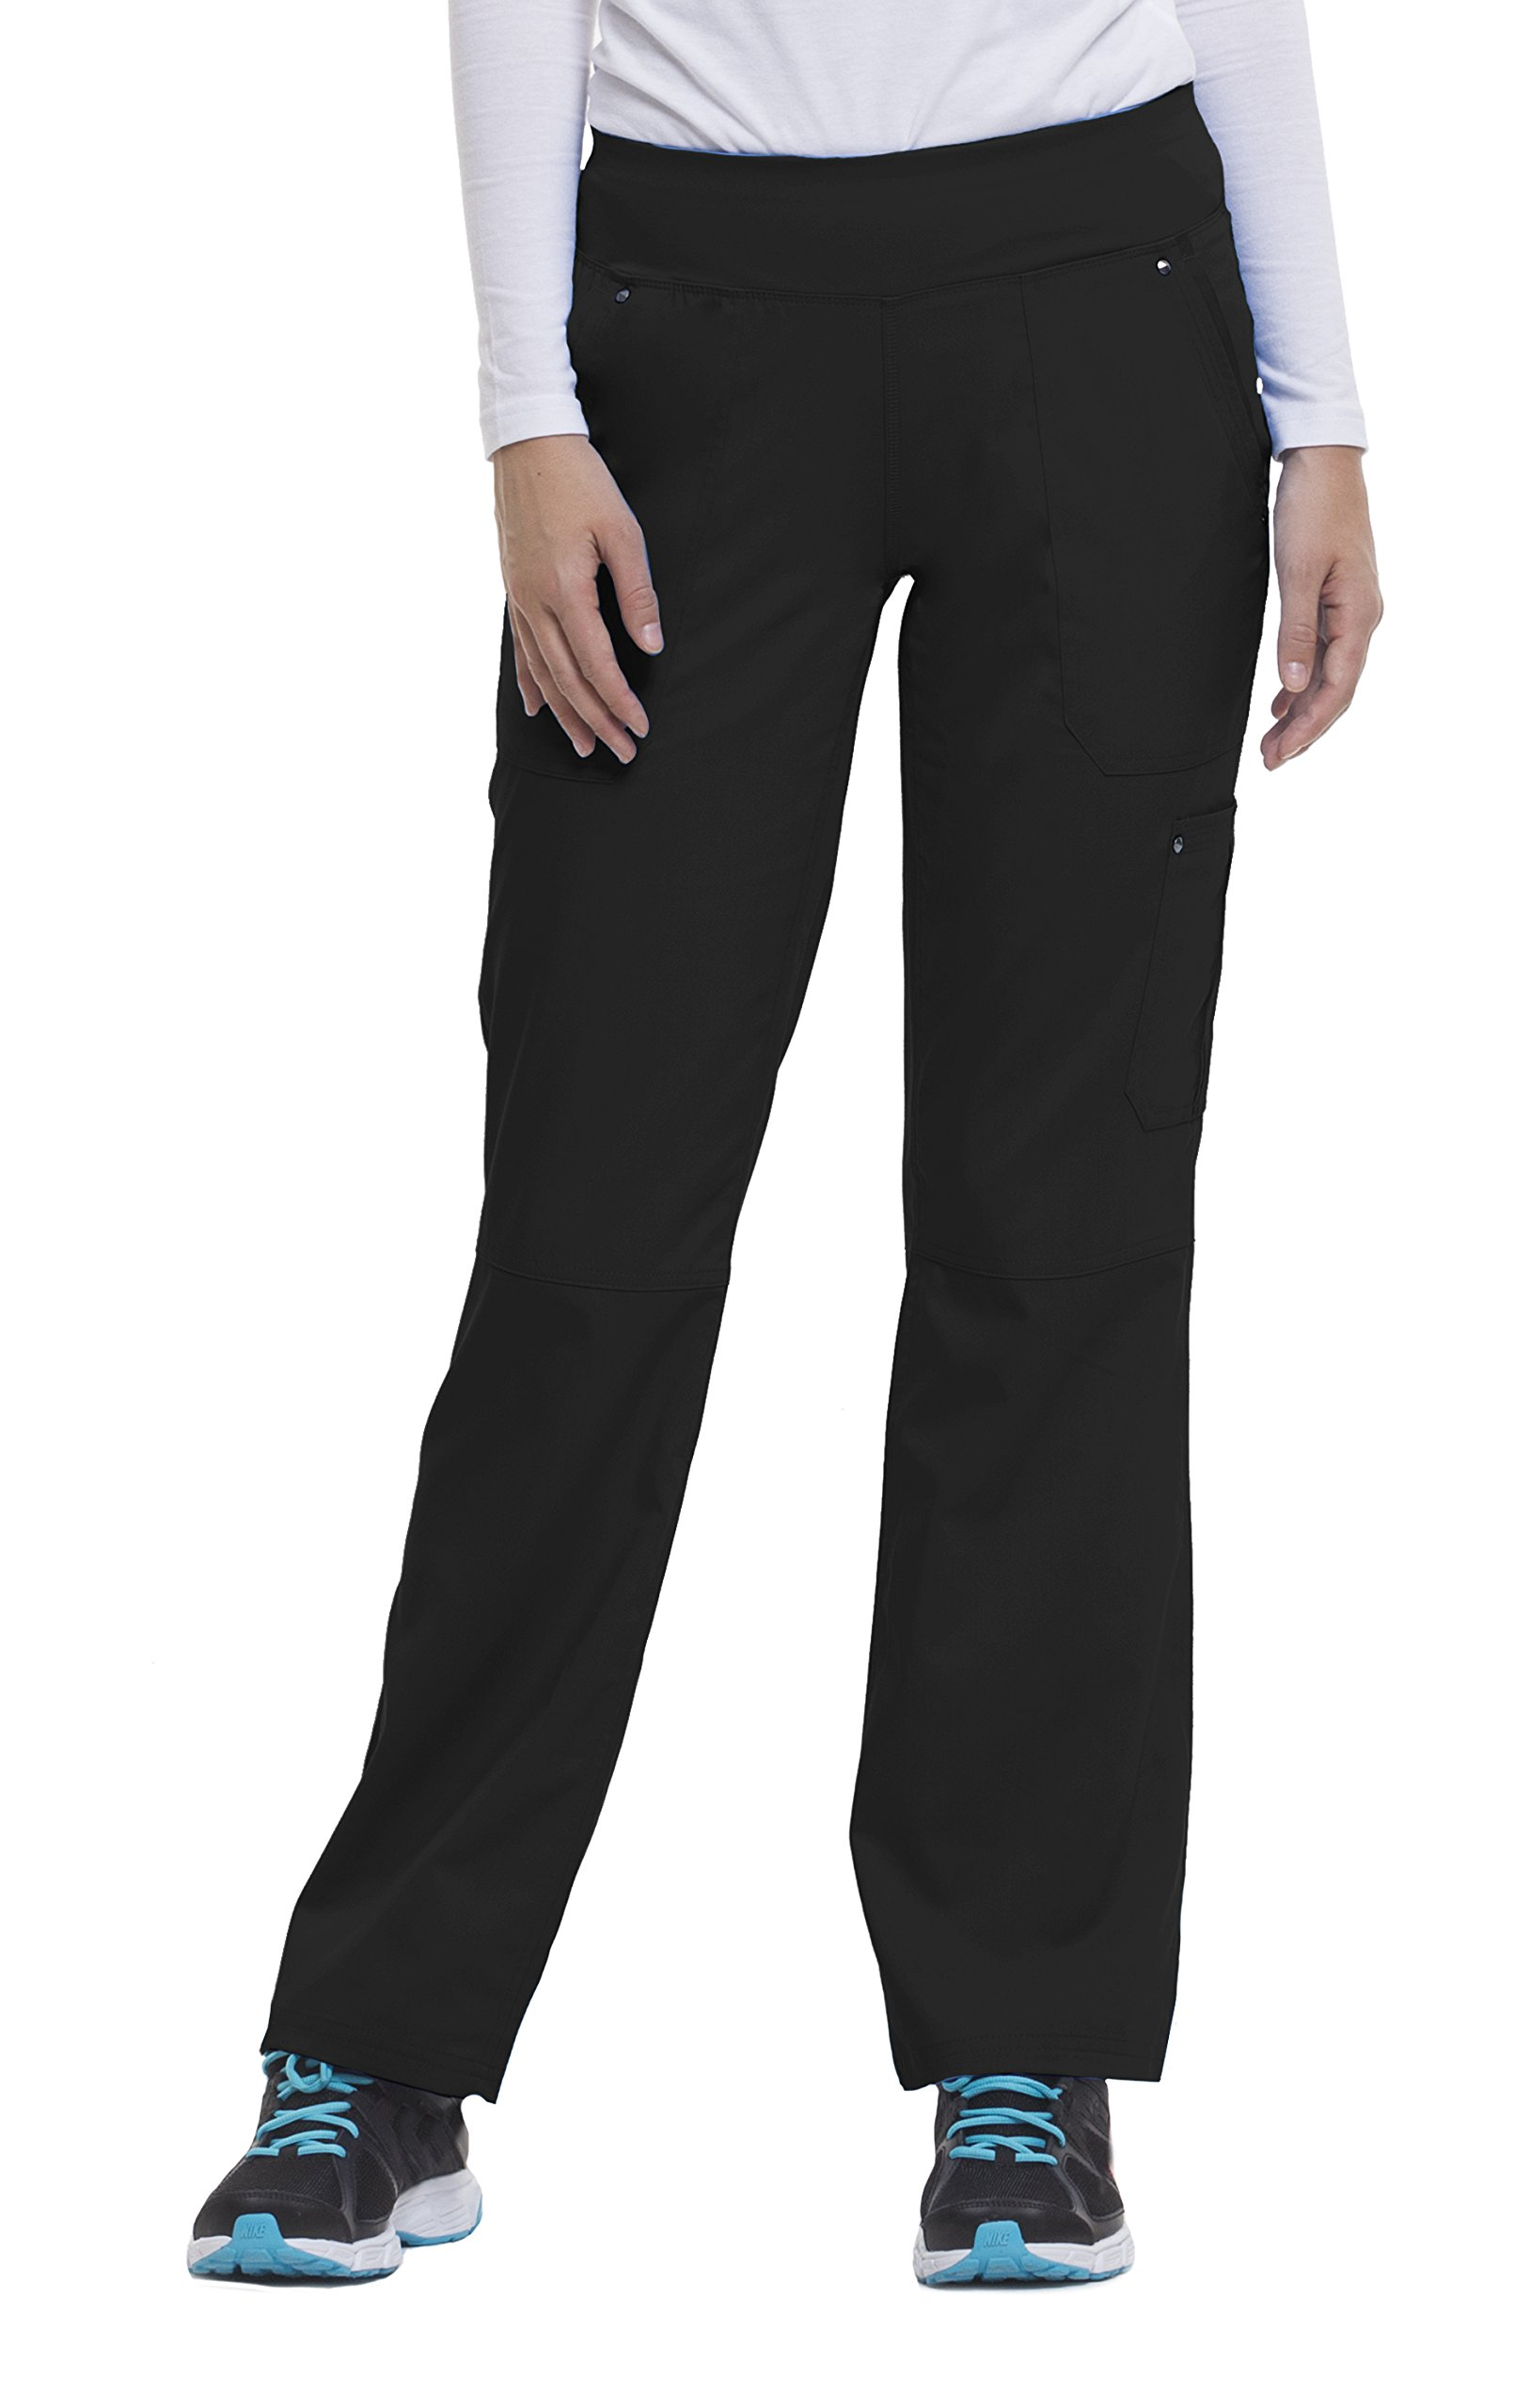 Purple Label Yoga Women's''Tori'' 9133 5 Pocket Knit Waist Pant by Healing Hands Scrubs- Black- Medium